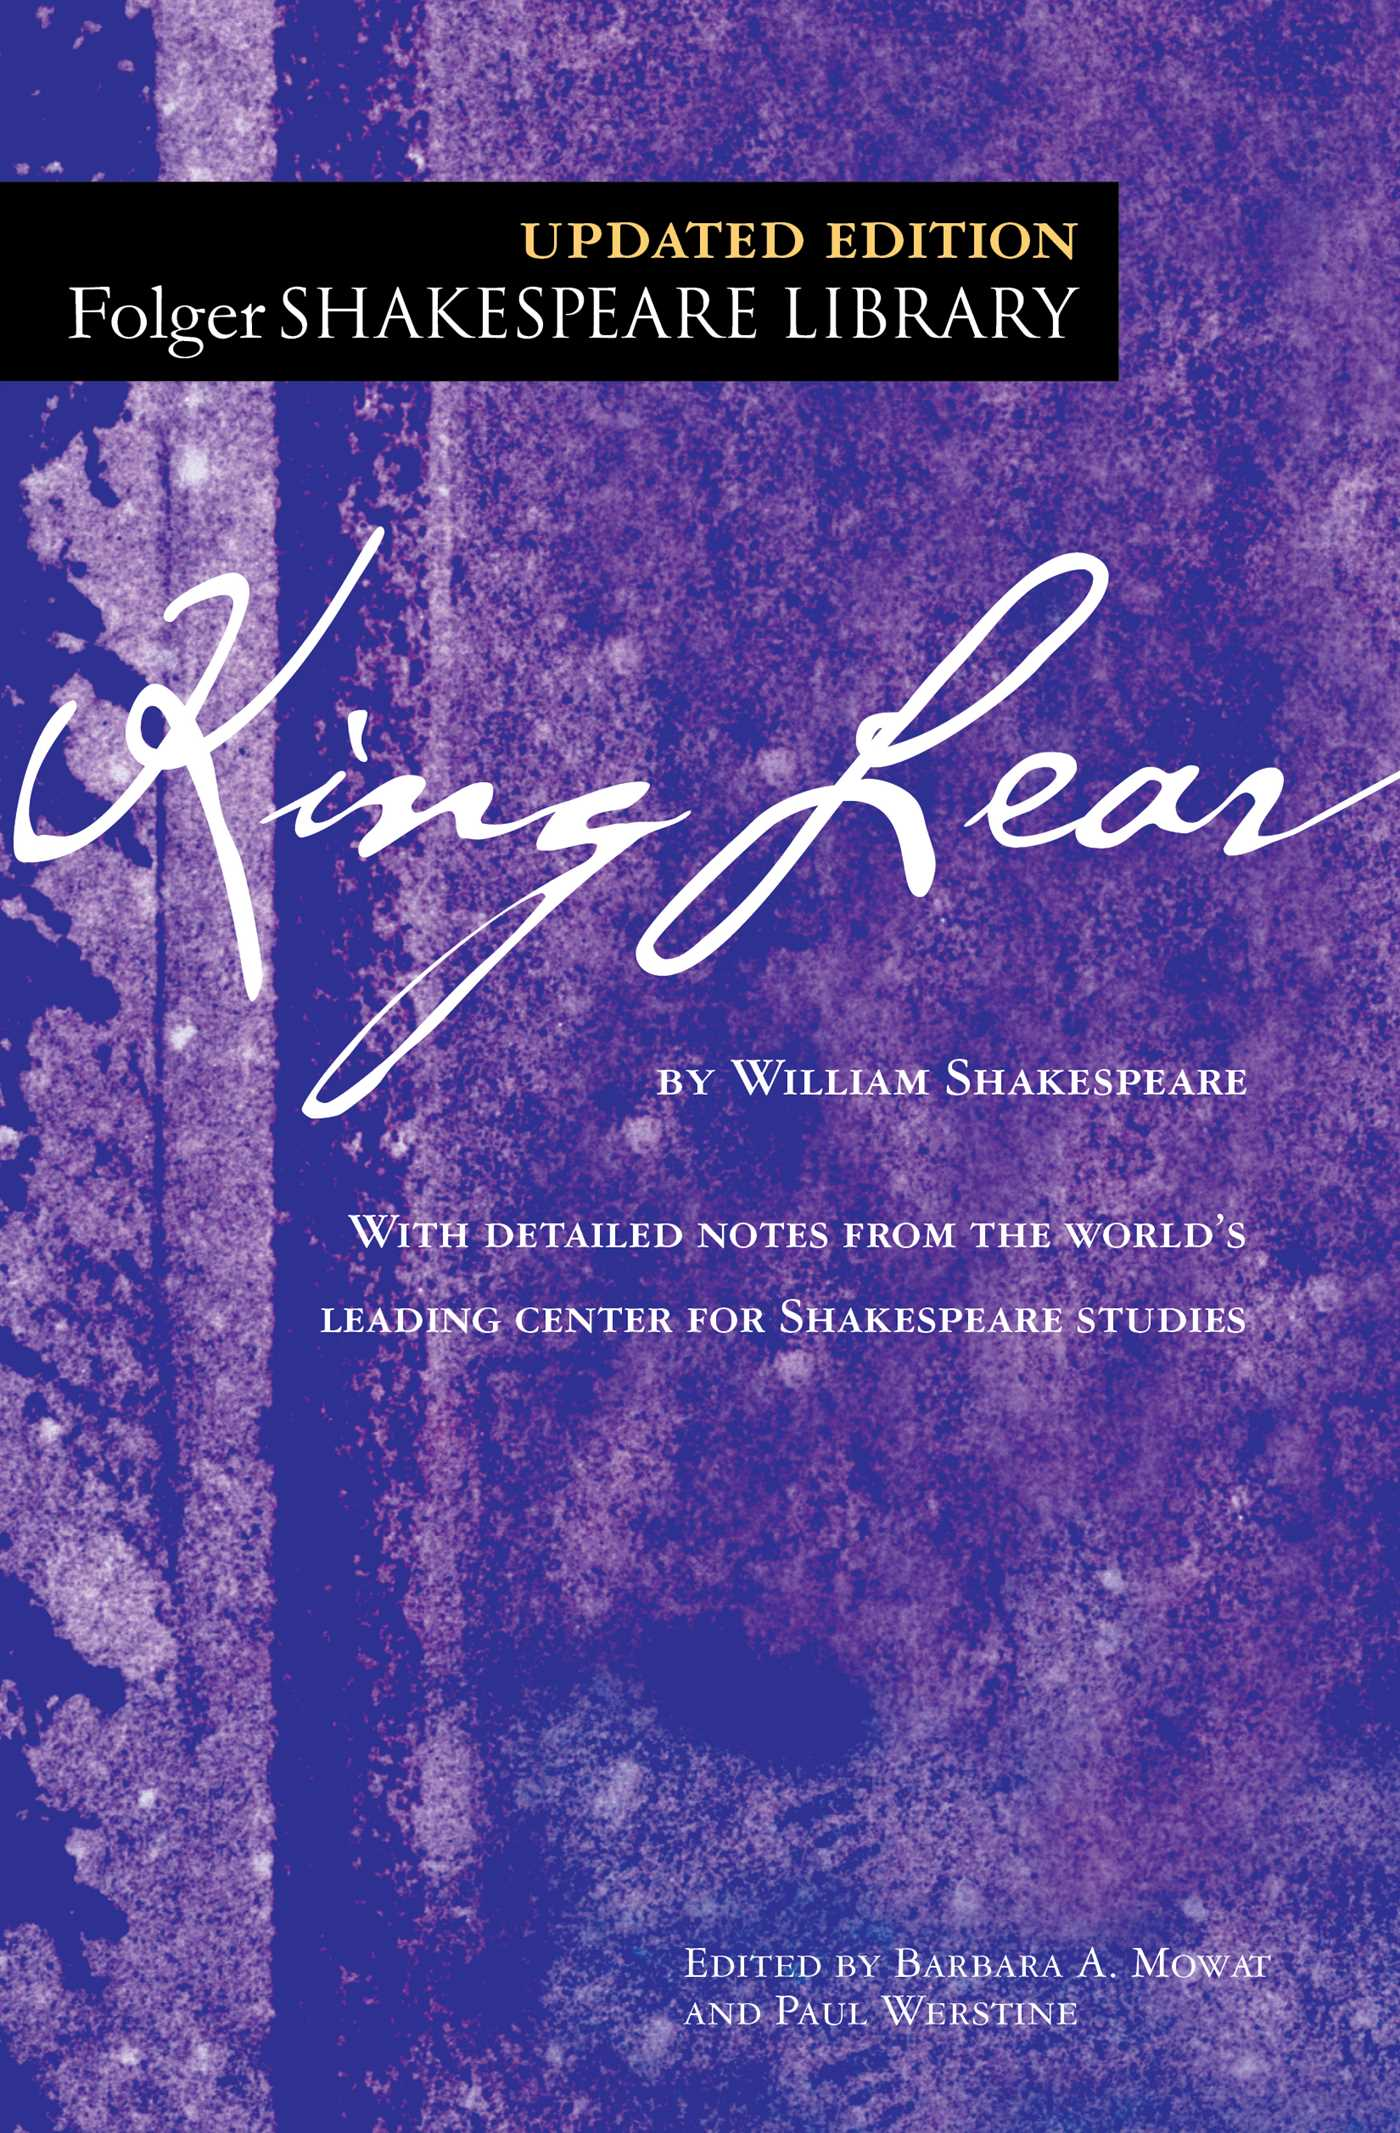 king lear book by william shakespeare dr barbara a mowat  king lear book by william shakespeare dr barbara a mowat paul werstine official publisher page simon schuster